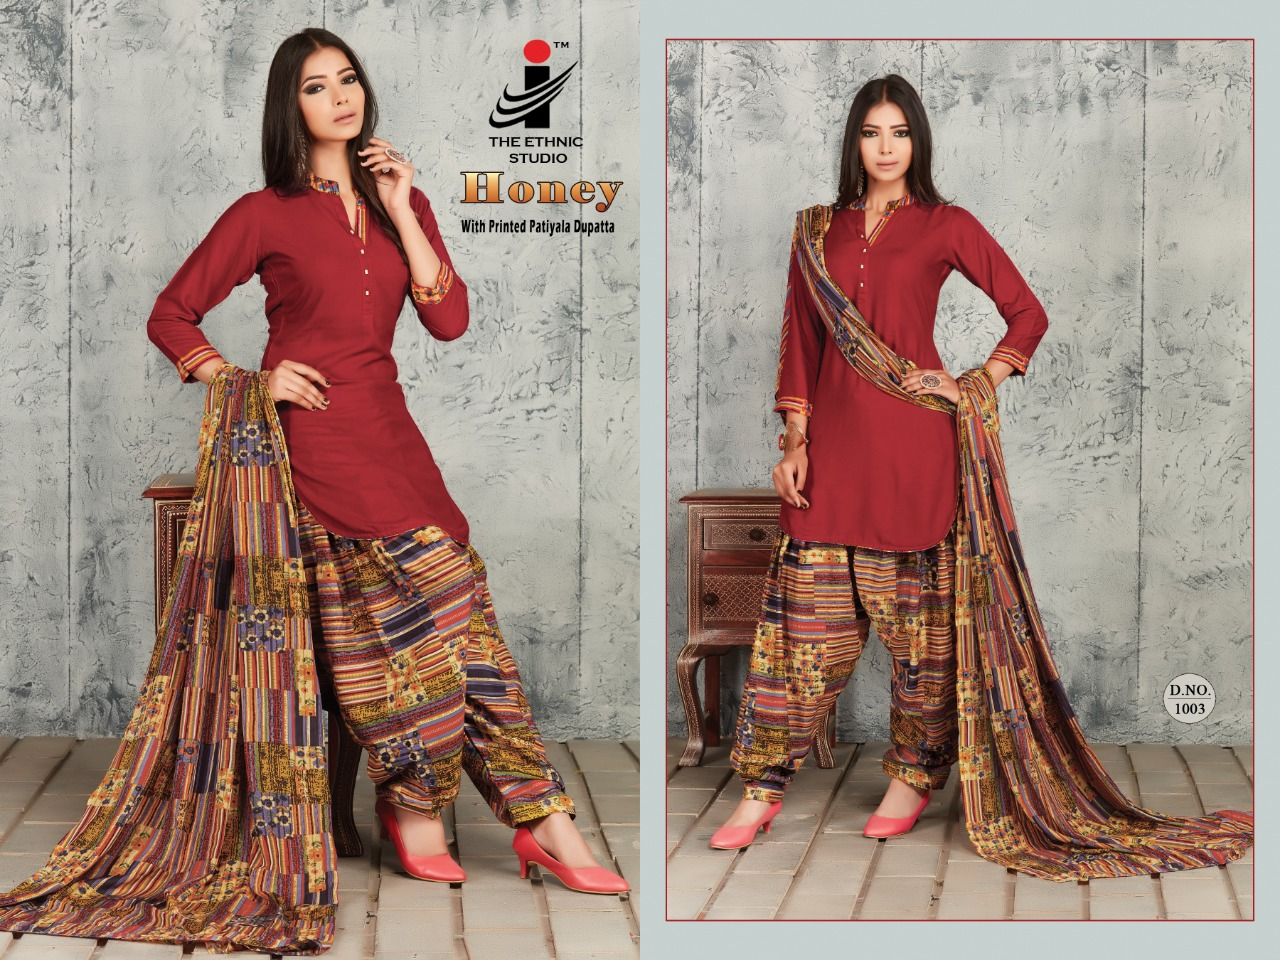 The Ethnic Studio Honey collection 1